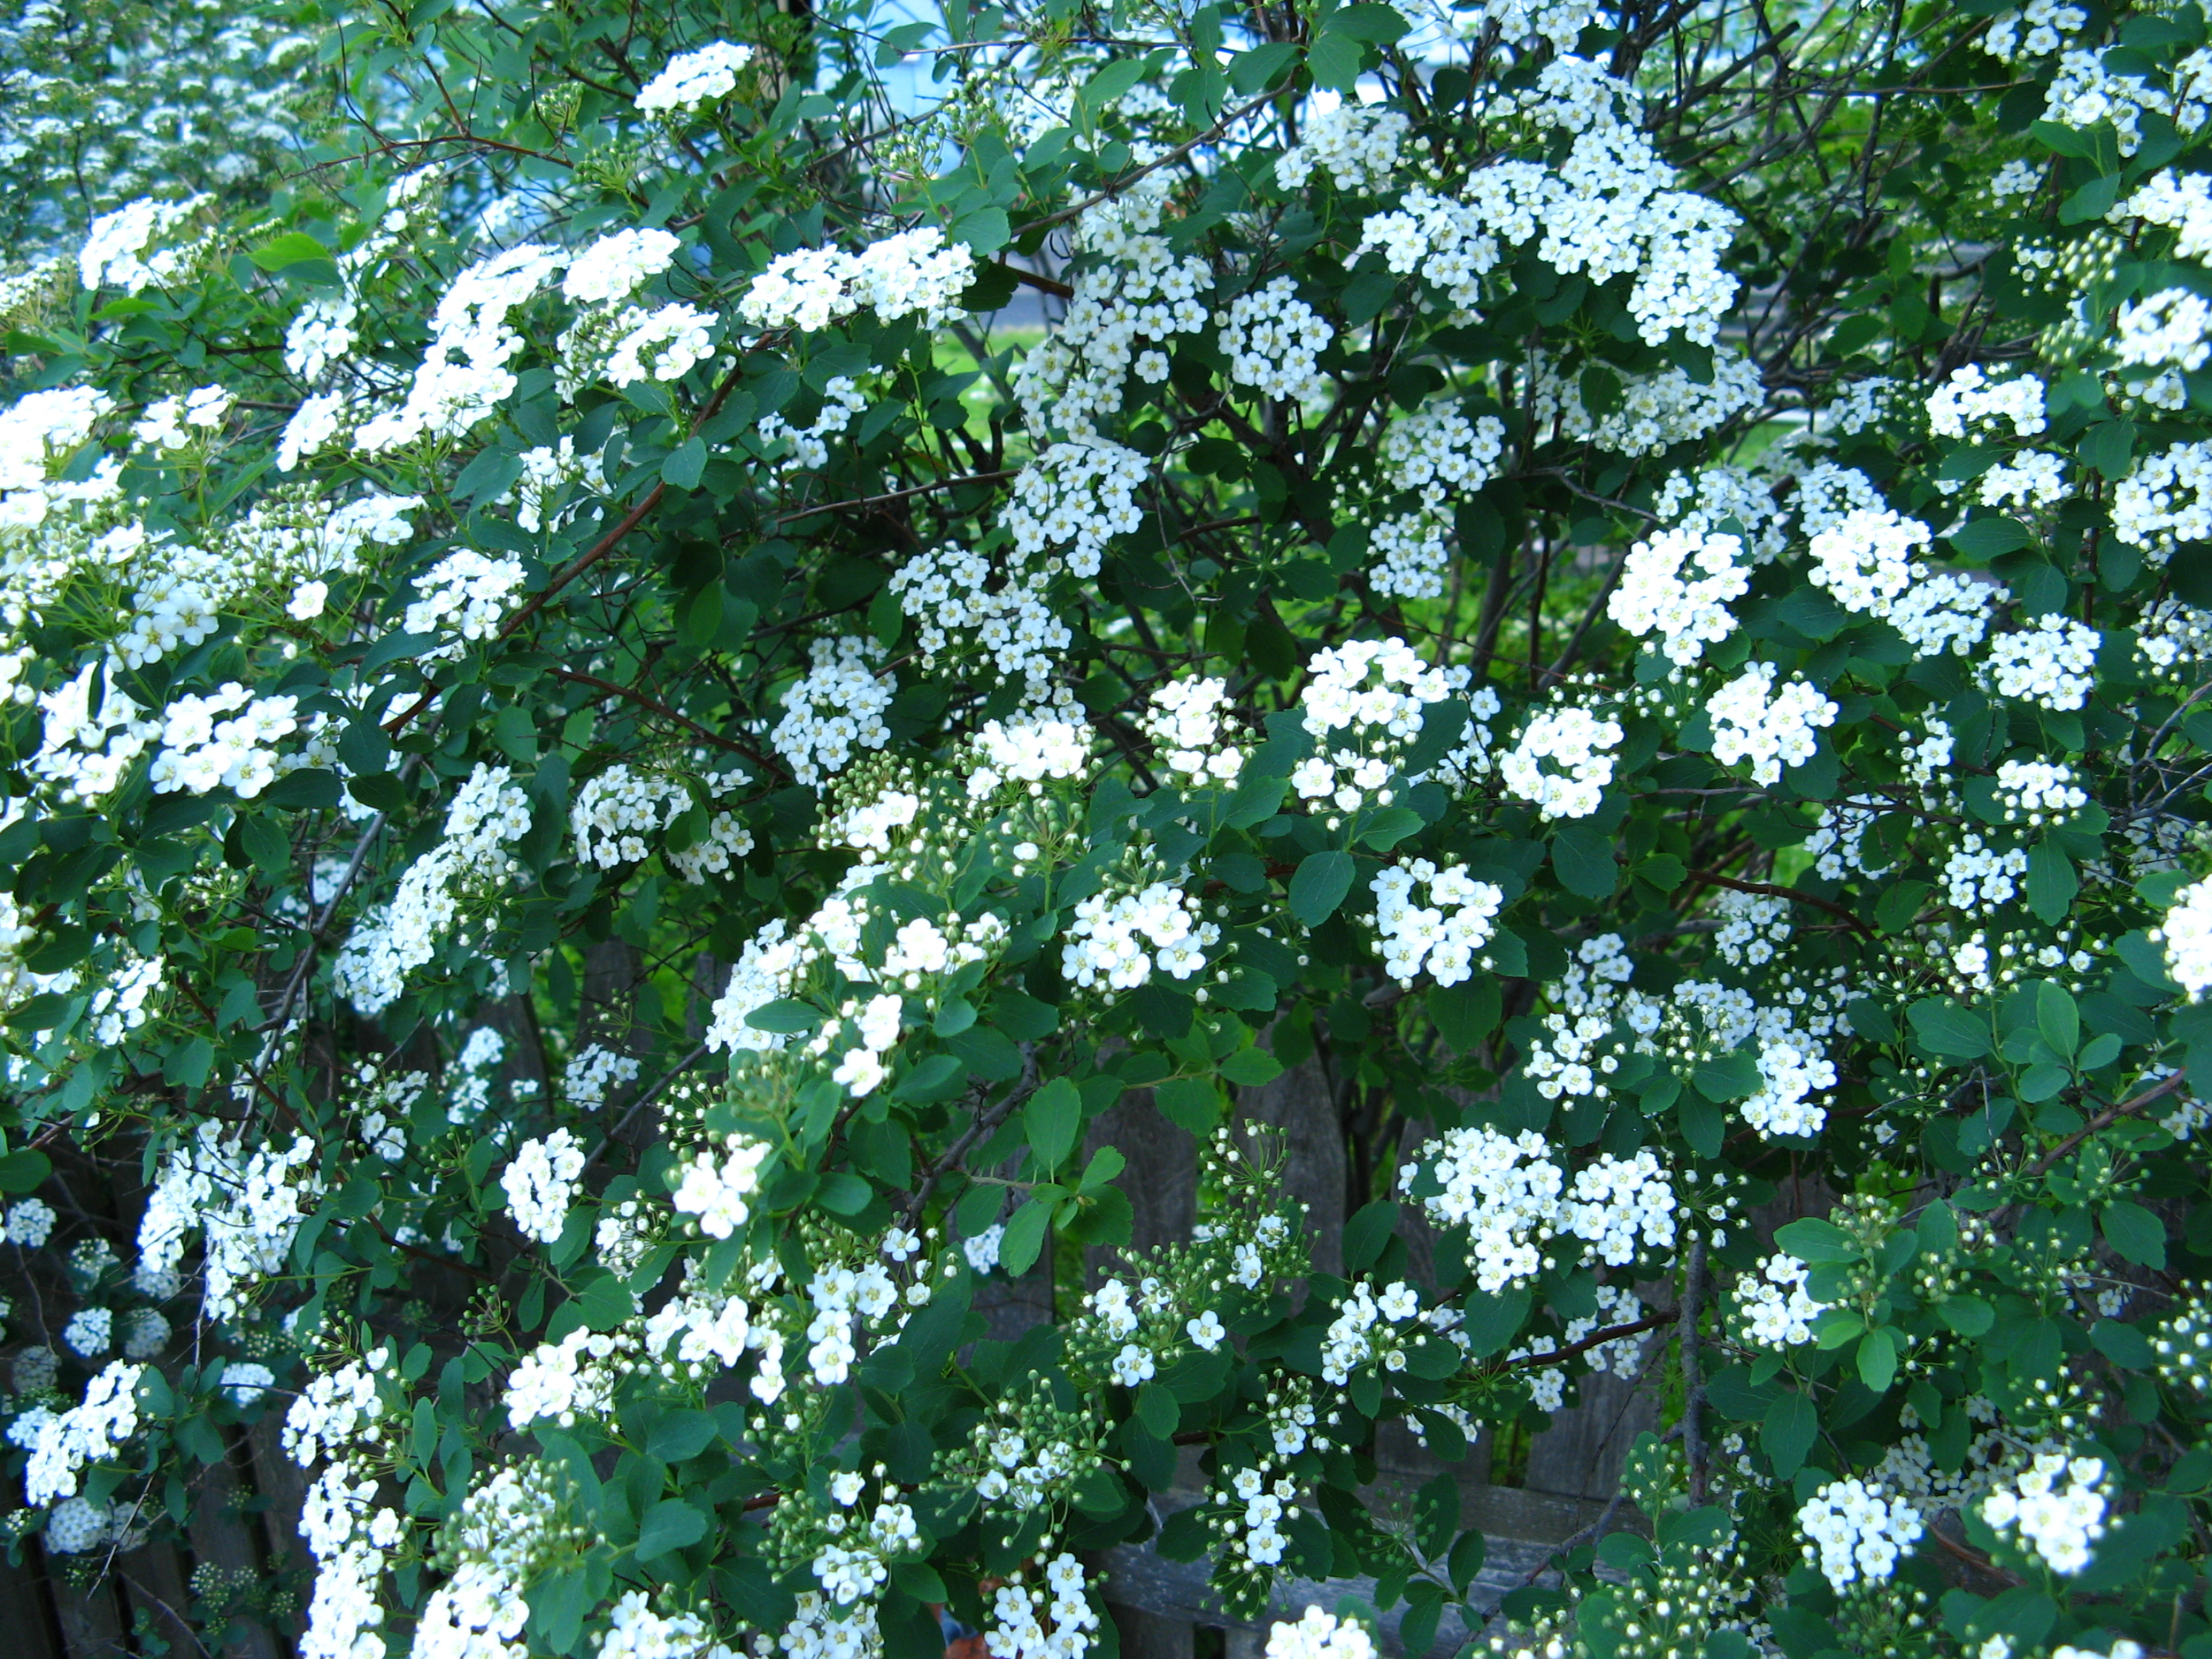 Spring is here - April shrubs, ground cover and must-haves